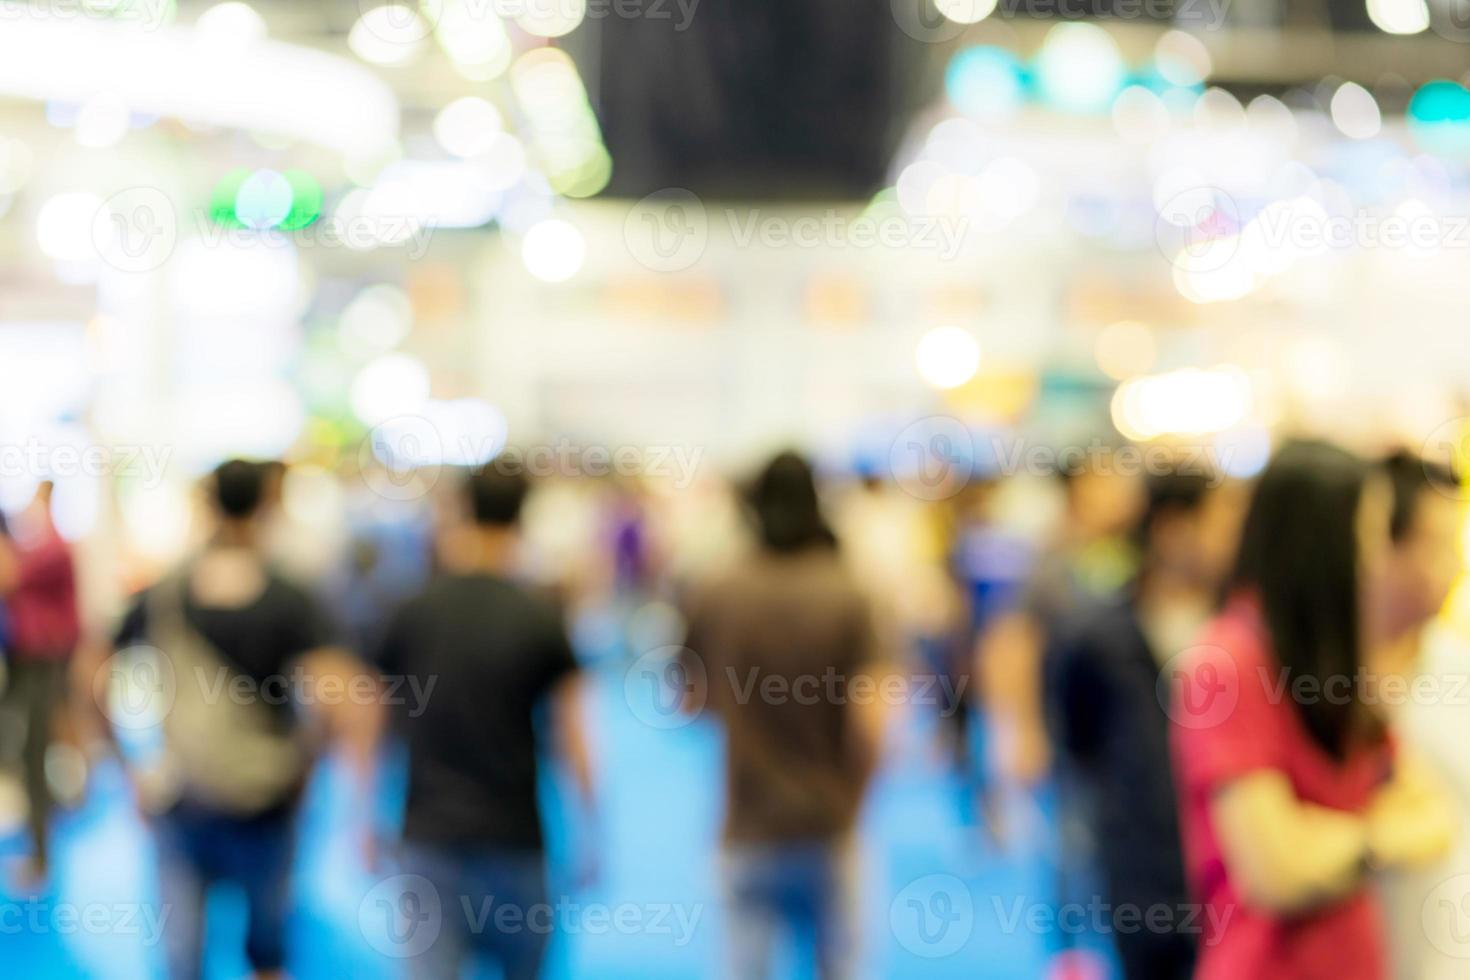 Blur image background of people in exhibition show photo